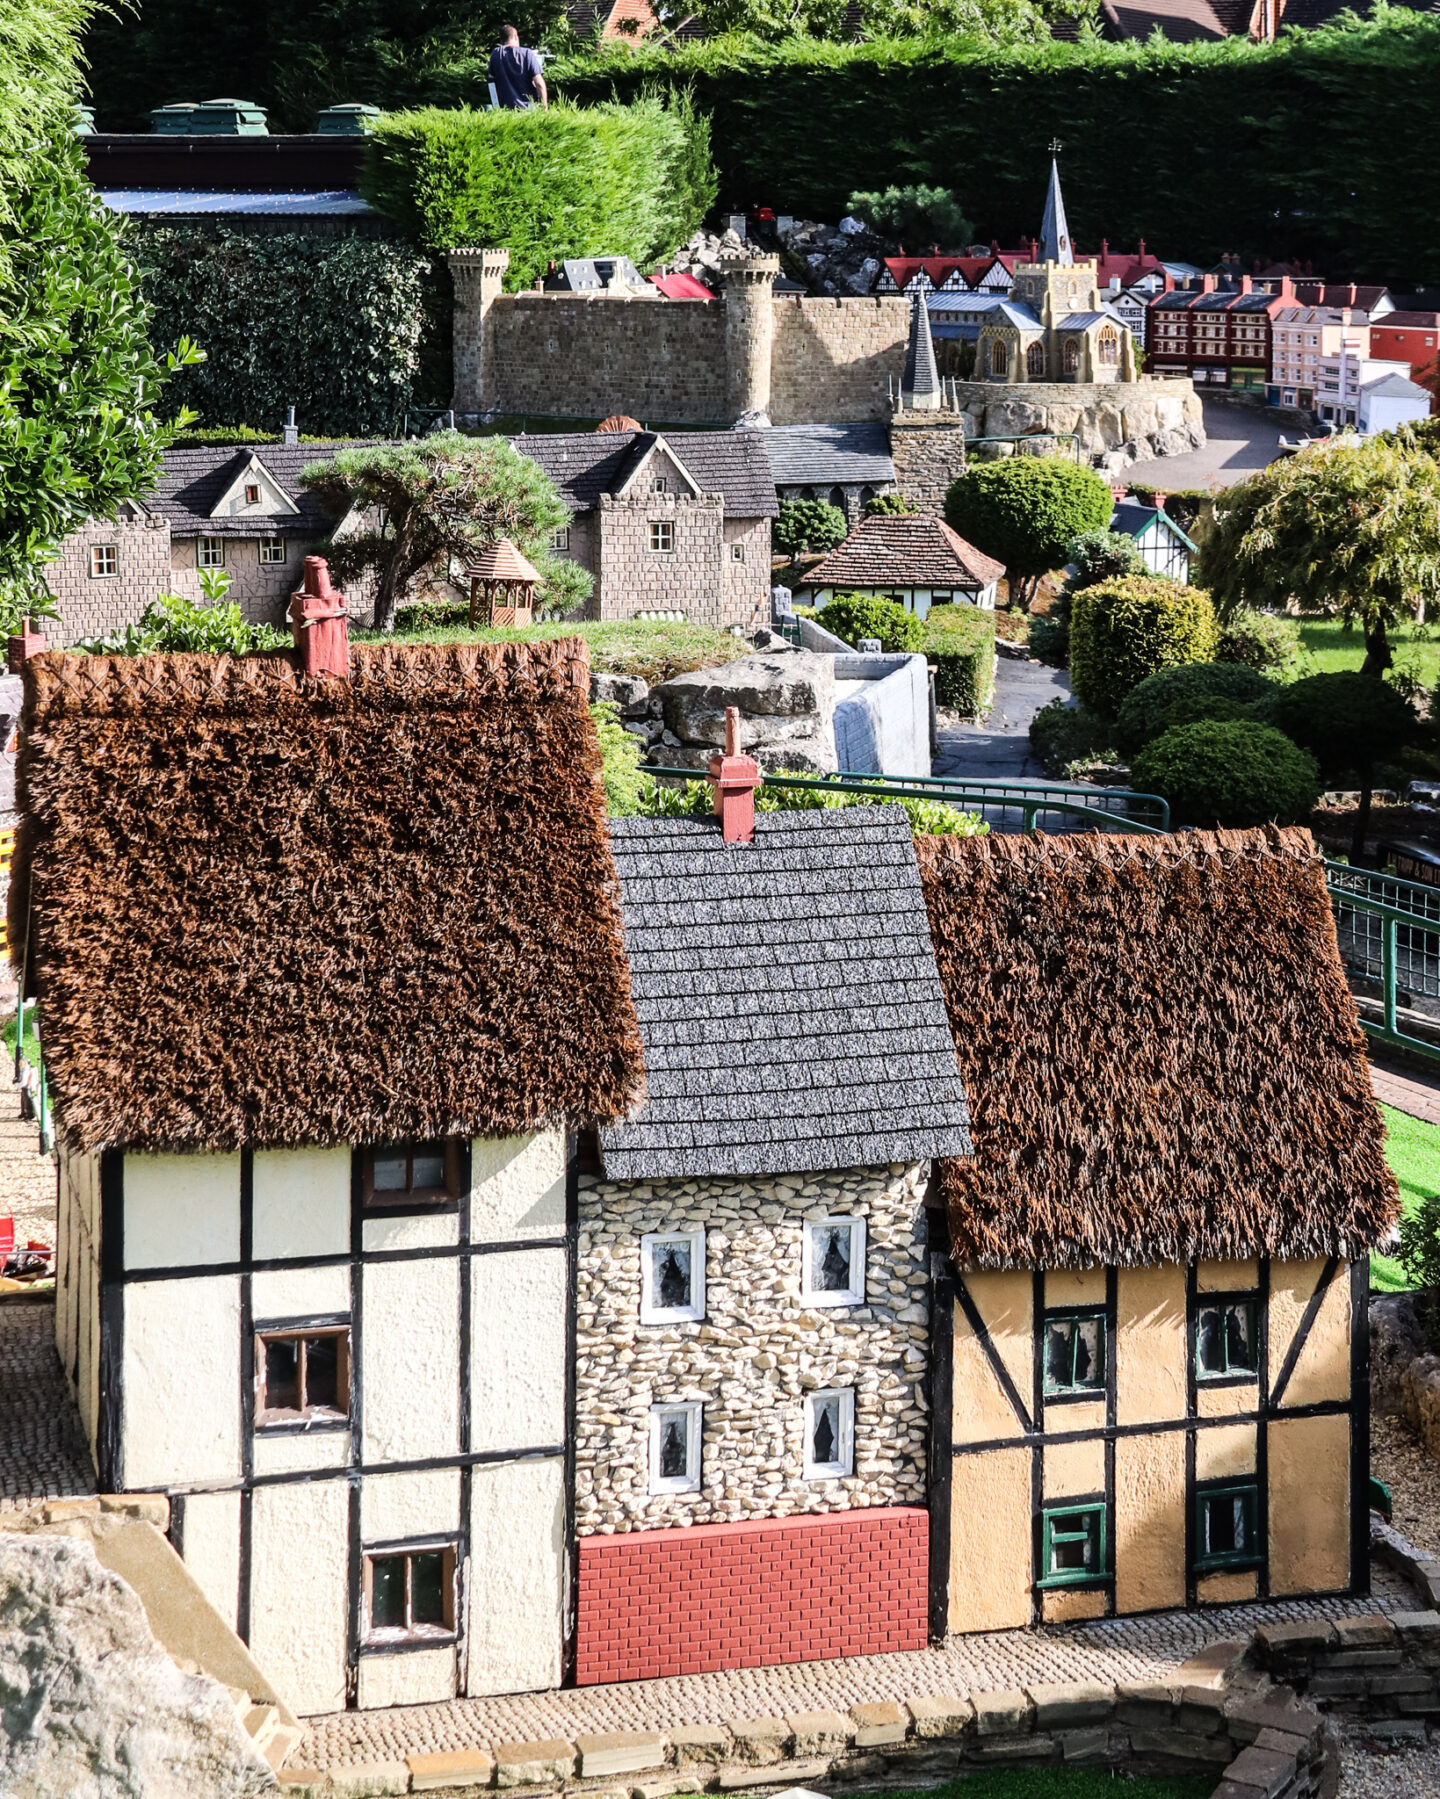 A view over Bekonscot, with thatched cottages in the foreground and church spires in the bakground.